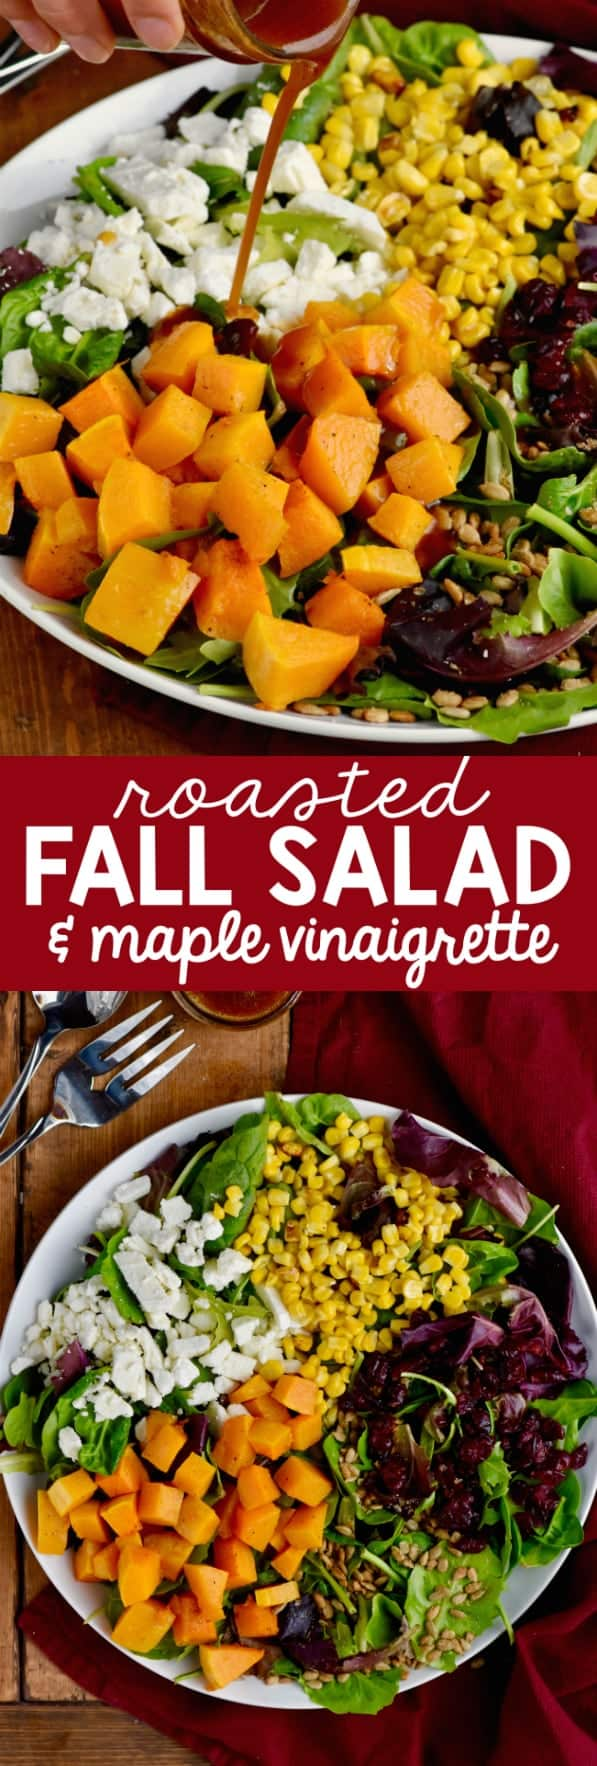 On a white plate, the Roasted Fall Salad with beautiful colors from cranberries, feta cheese, corn, greens, and butternut squash has the Maple Vinaigrette Dressing being poured on top.